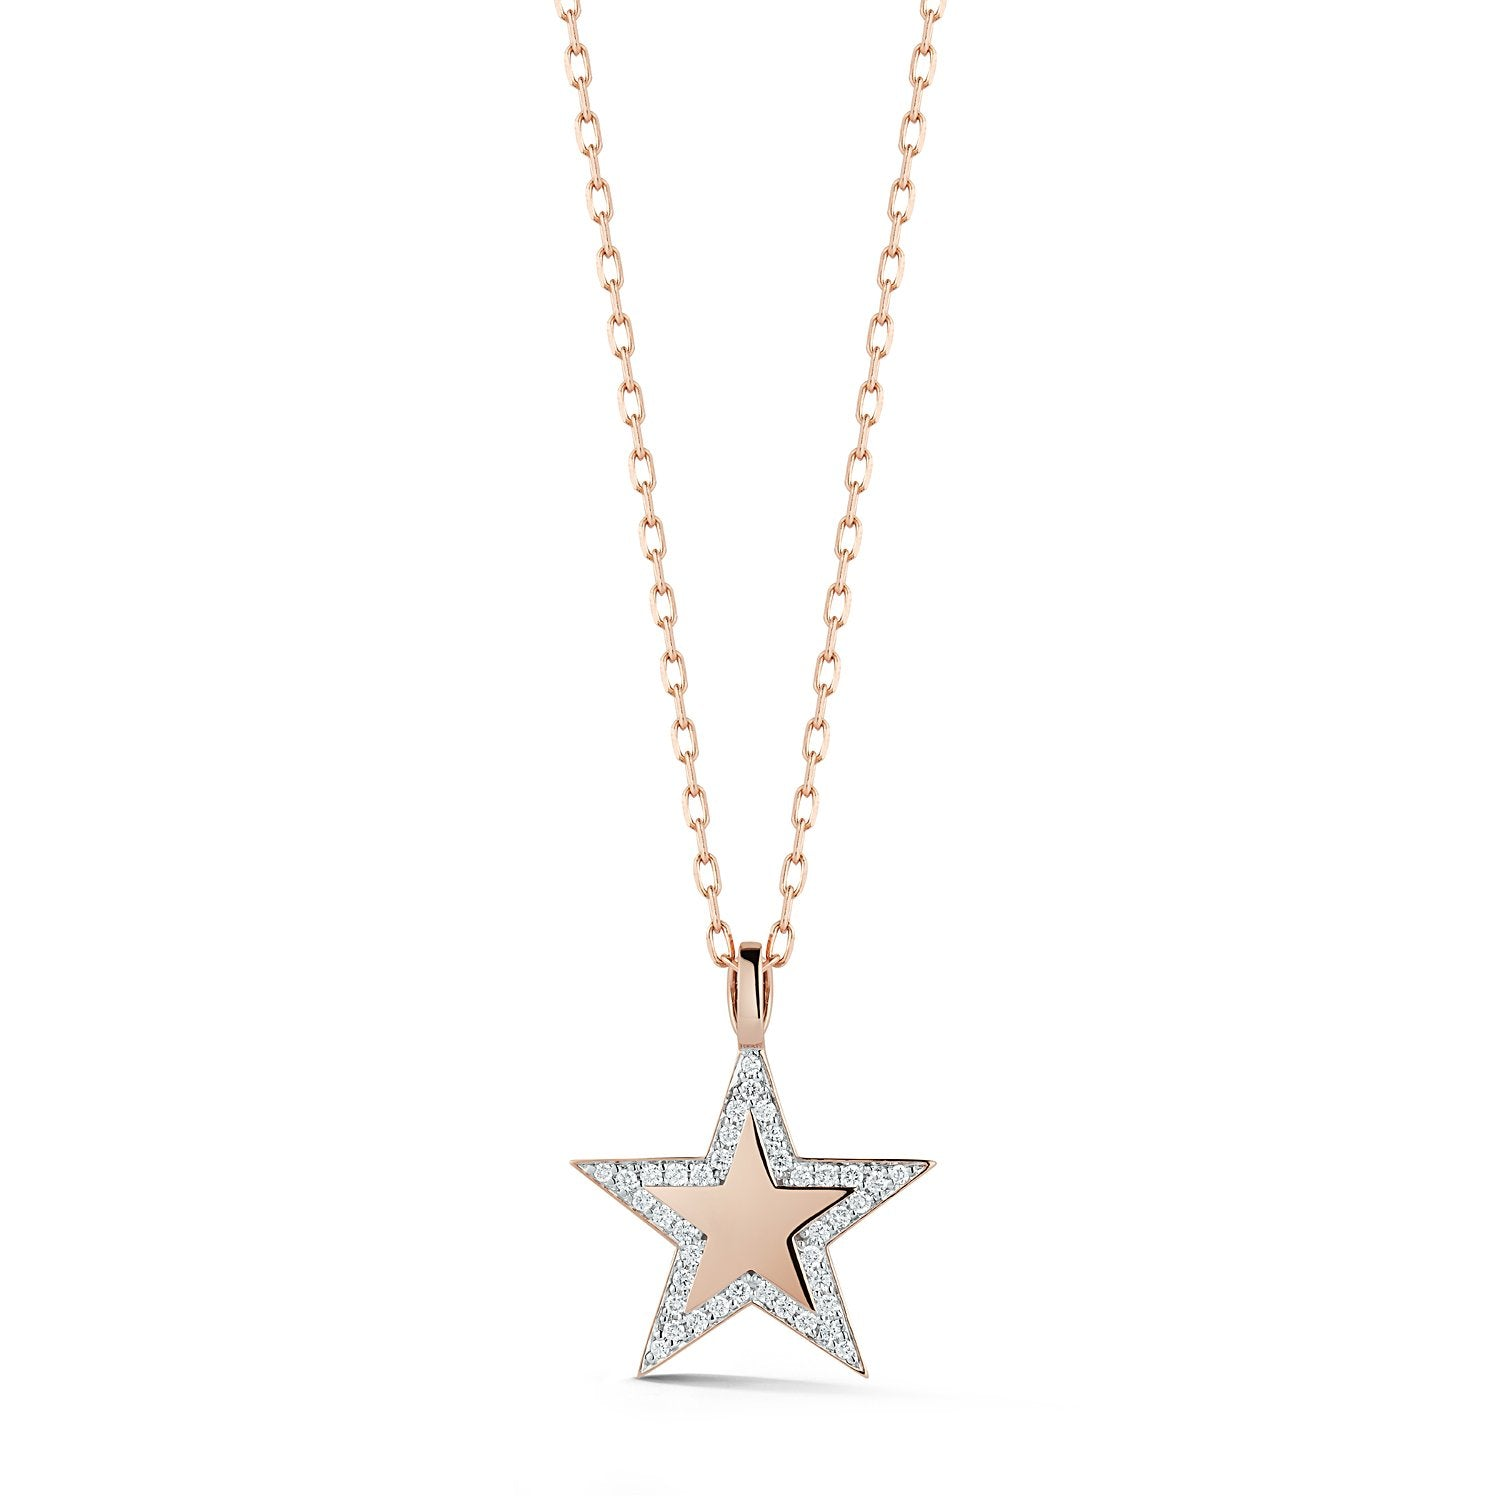 The Ashleigh Bergman Collective x Walters Faith Diamond Edge Large Star Charm